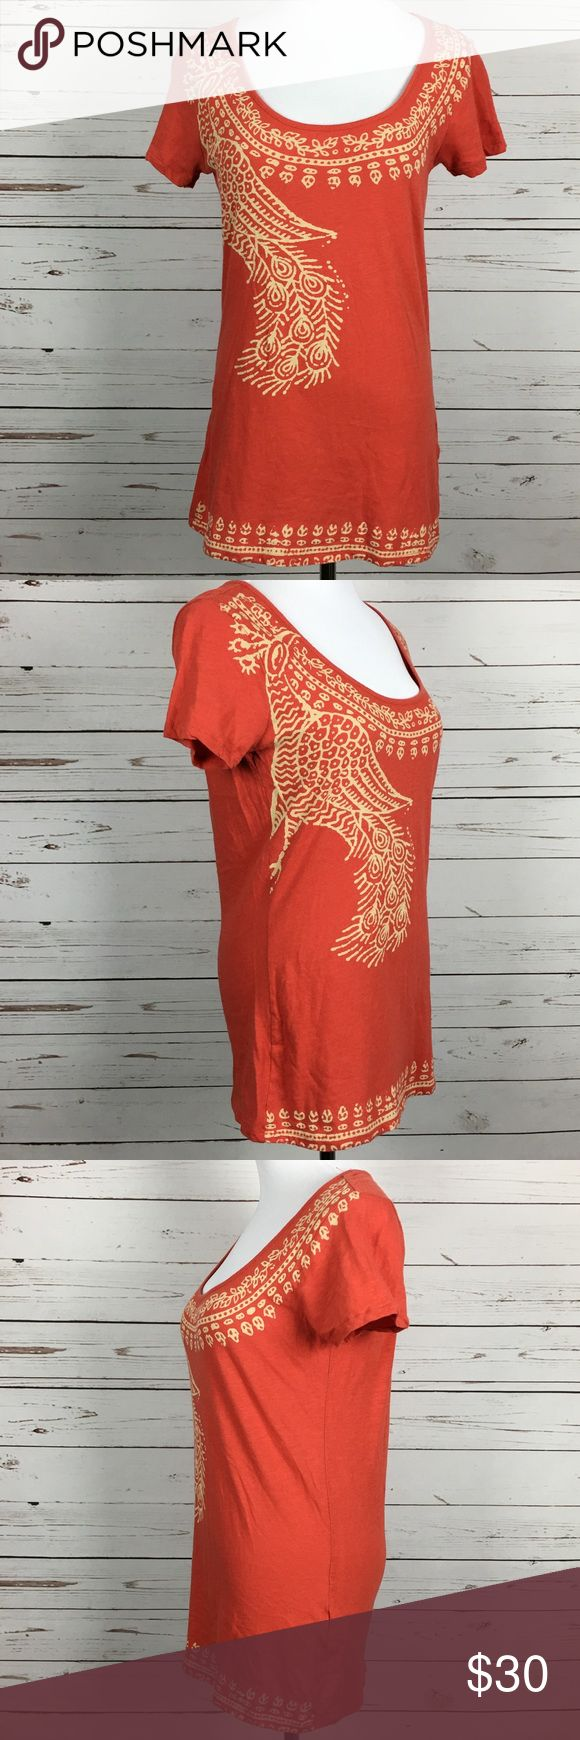 Lucky Brand S Woman's Tee Shirt Orange Peacock Excellent used condition Lucky Brand Tops Tees - Short Sleeve